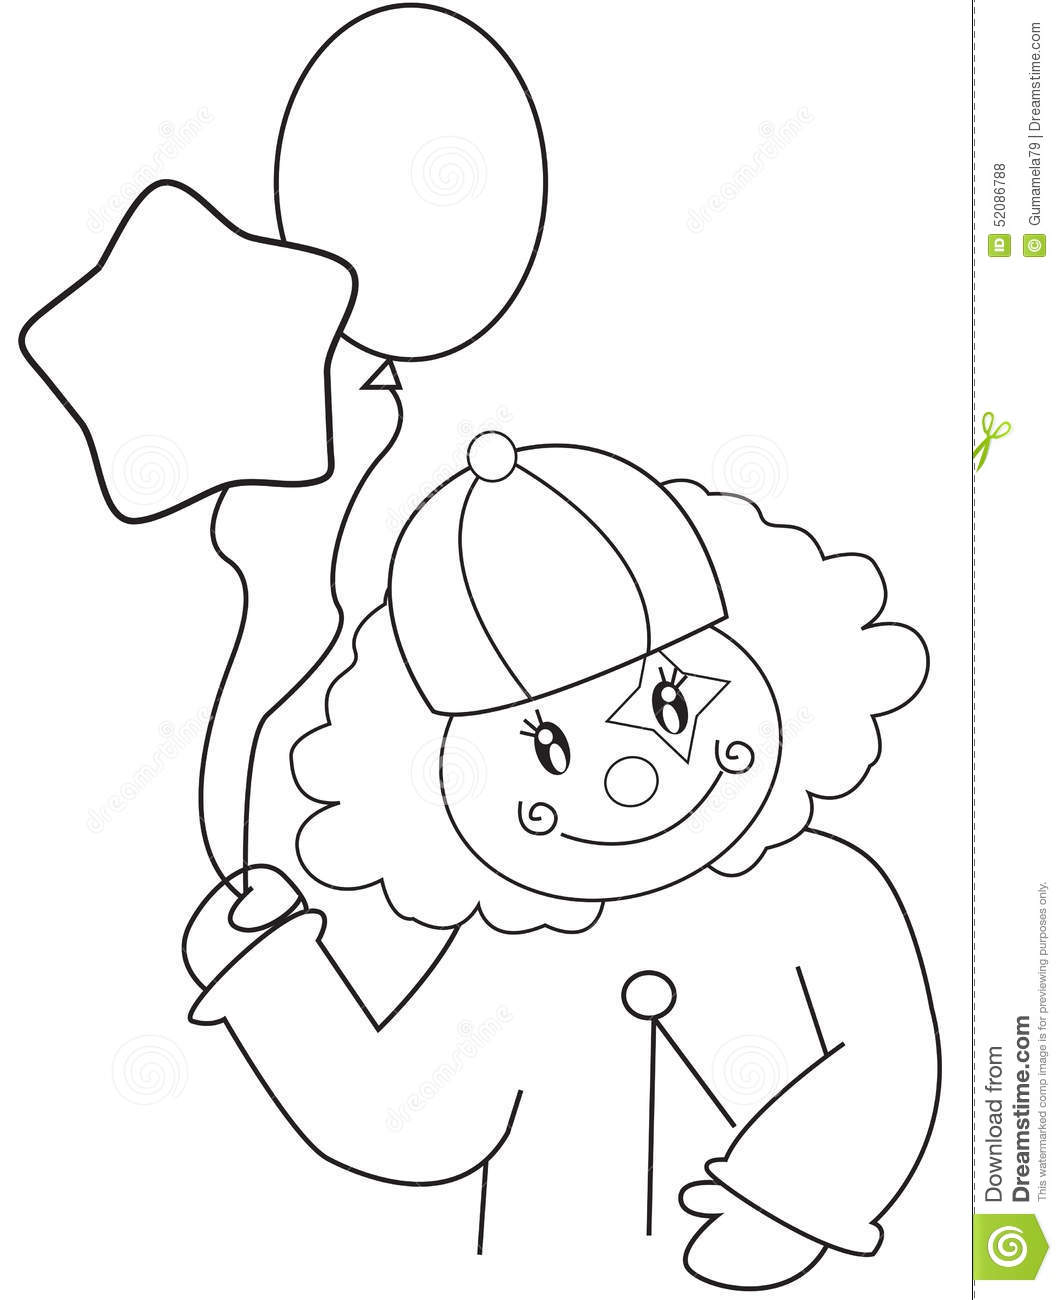 royalty free illustration download clown with balloons coloring page - Clown Balloons Coloring Page